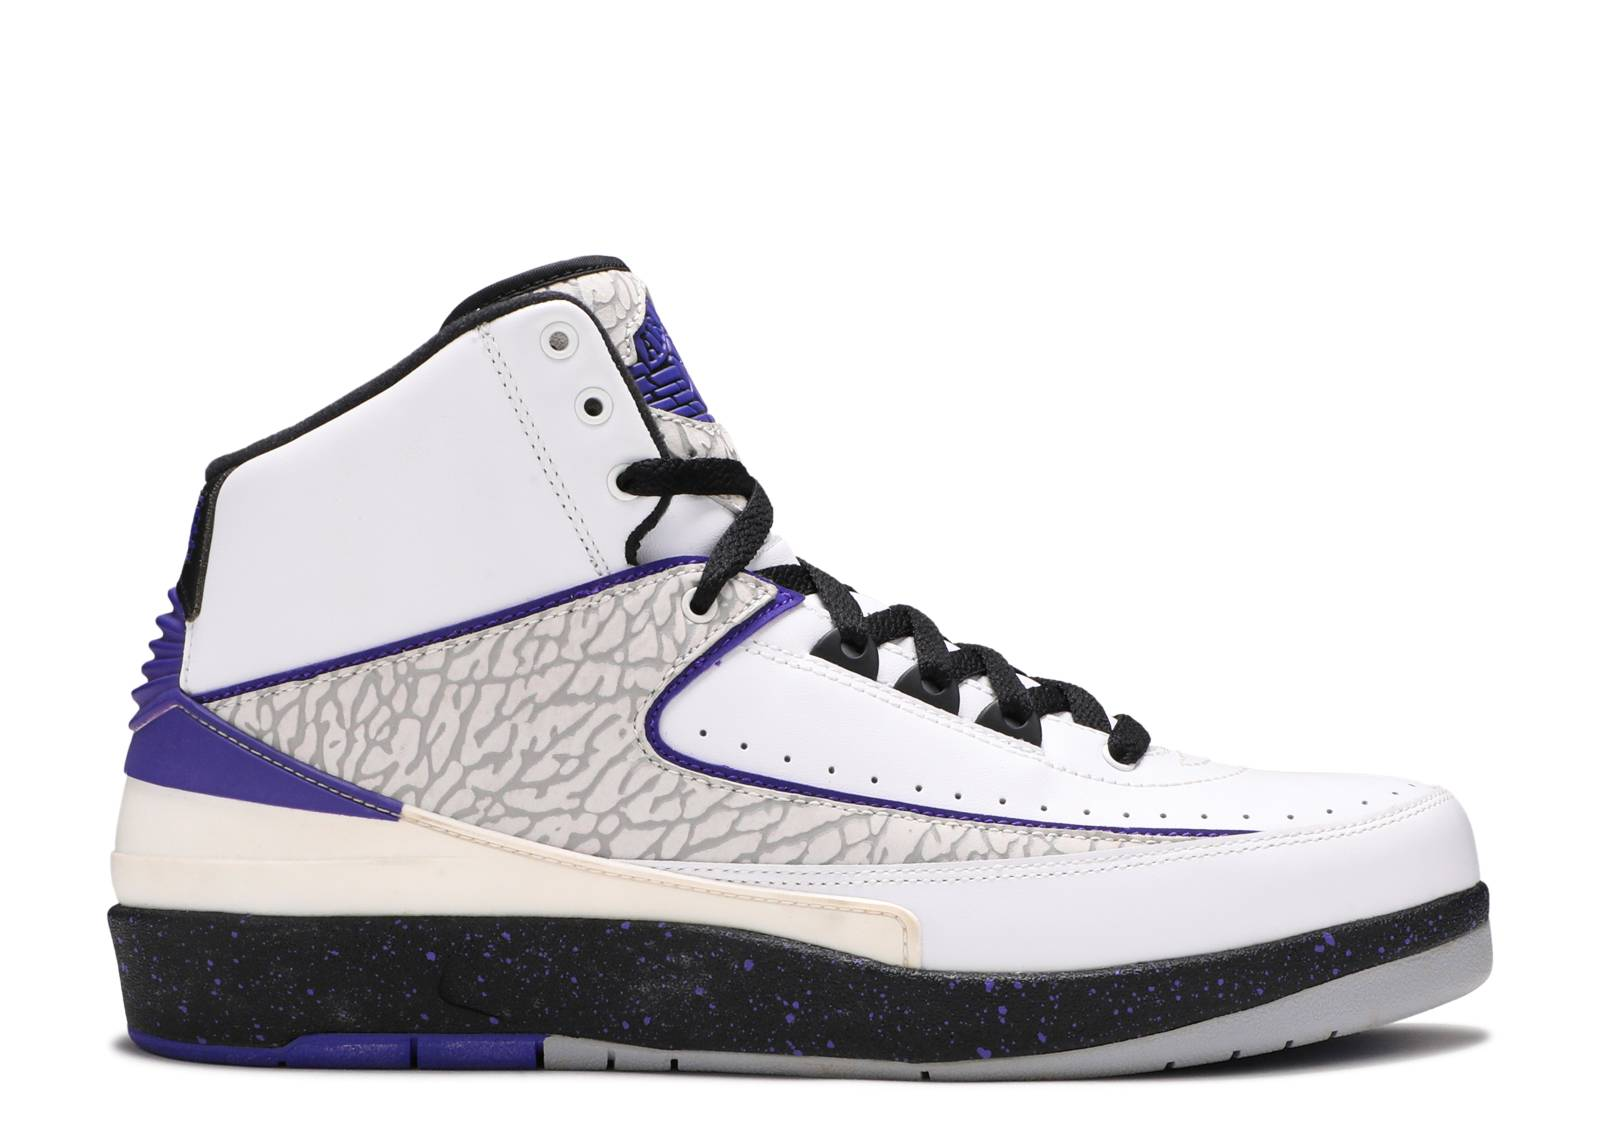 premium selection 7e129 d4597 Air Jordan 2 (II) Shoes - Nike | Flight Club